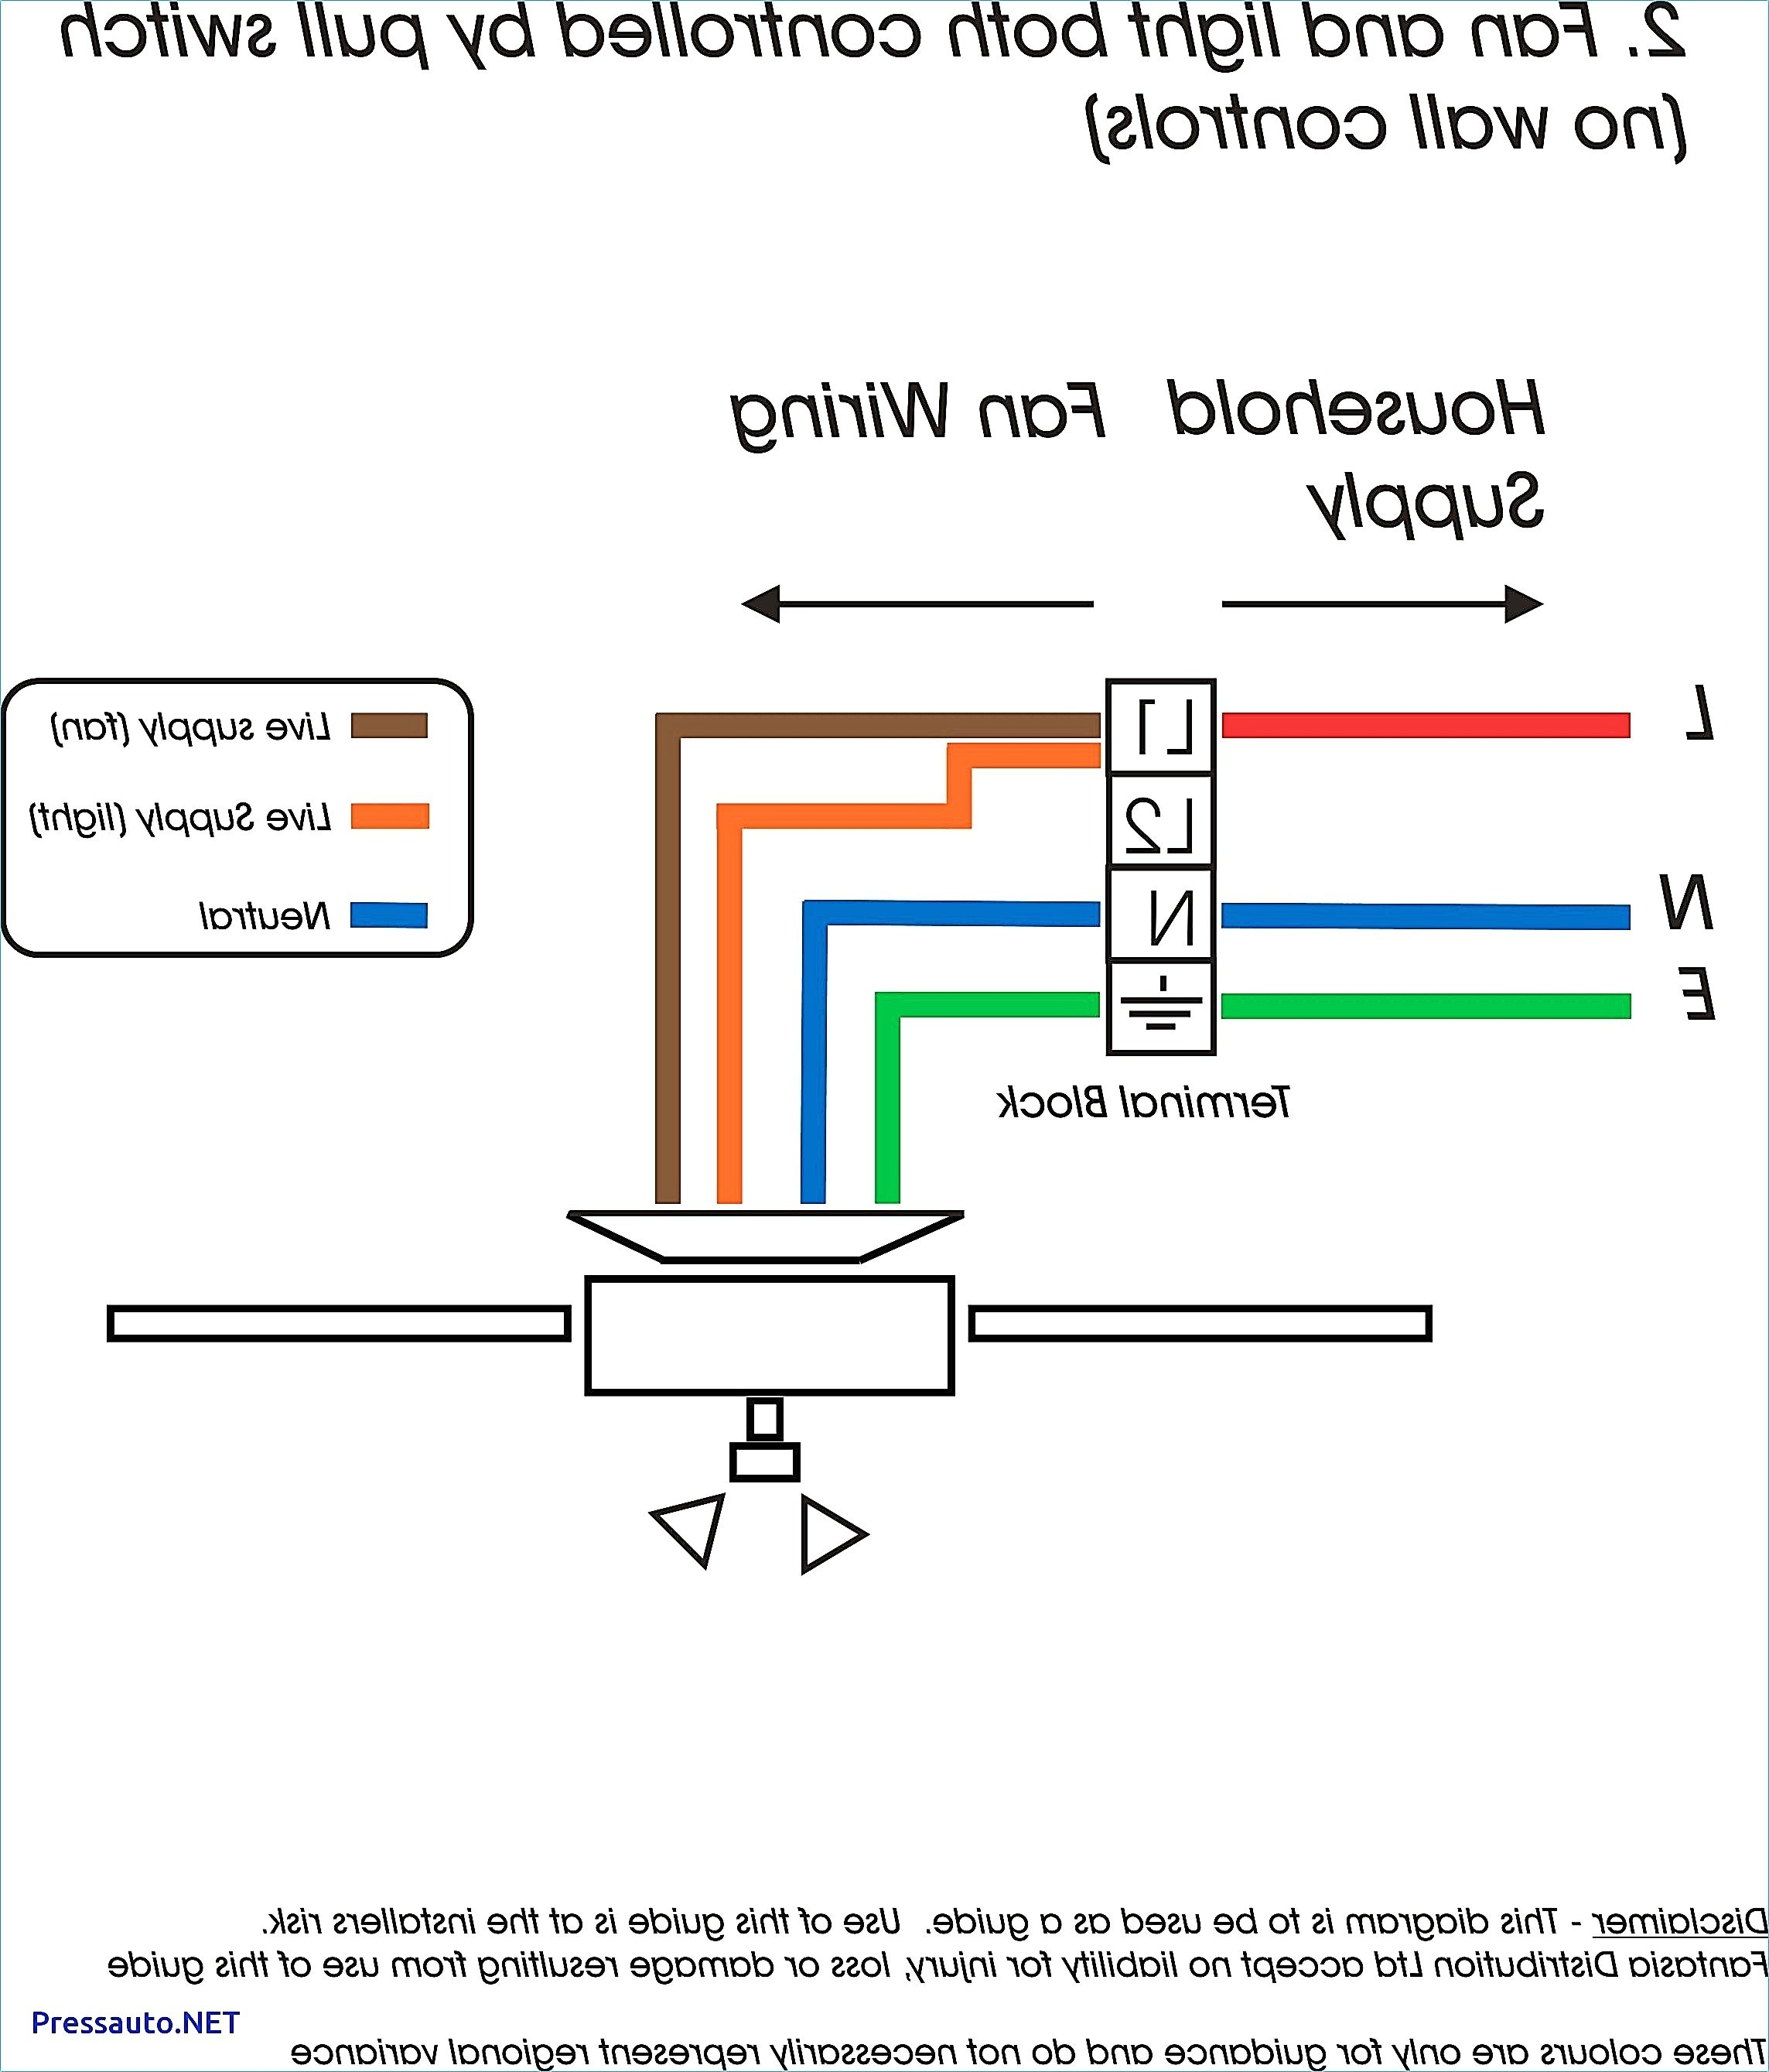 kenmore dryer thermostat wiring diagram Download-Honeywell Dial thermostat Wiring Diagram New Wiring Diagram Kenmore Dryer Archives Yourproducthere Refrence 15-r